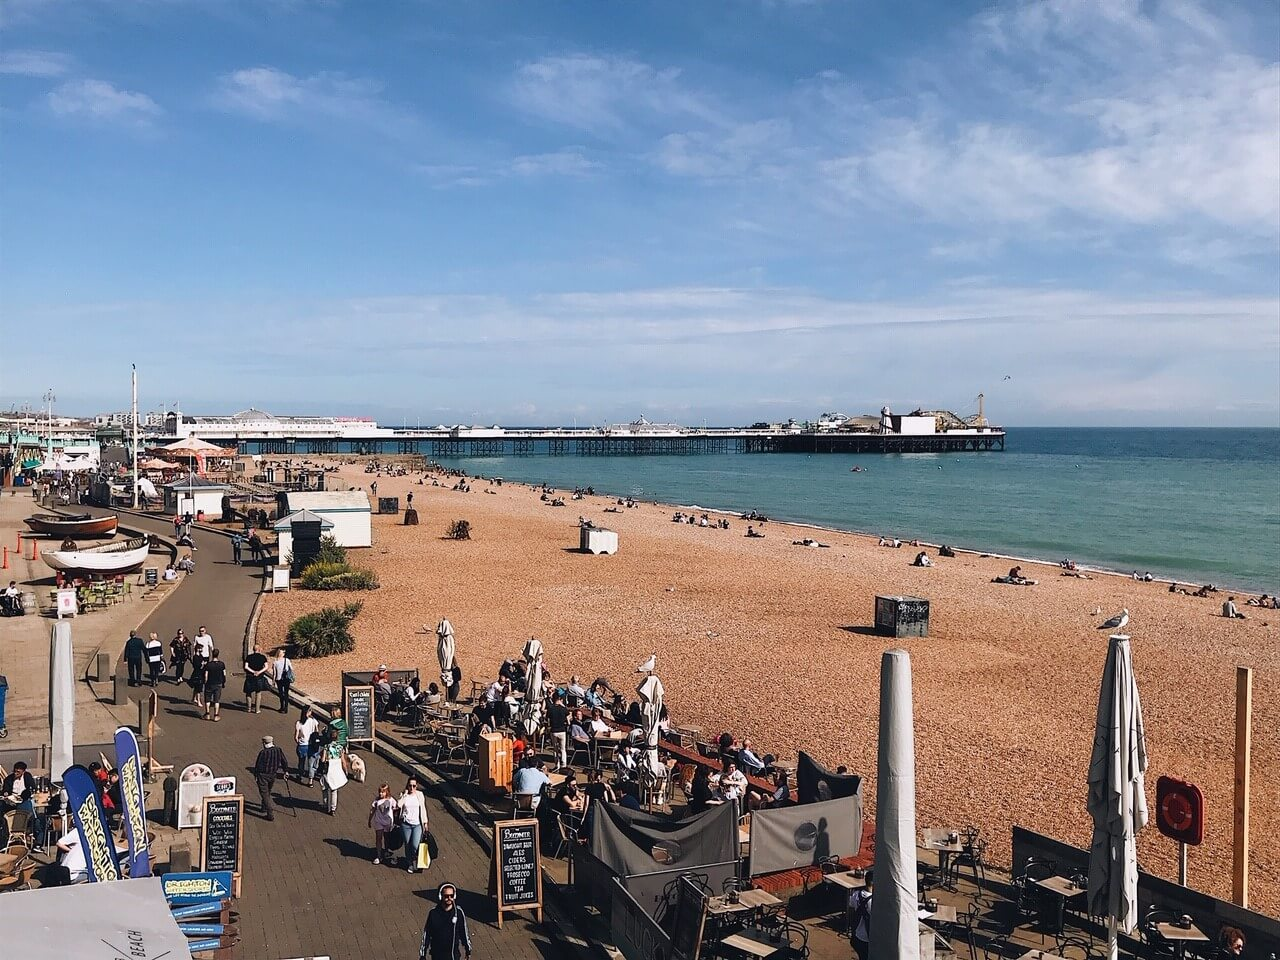 Day trip to Brighton: the beach